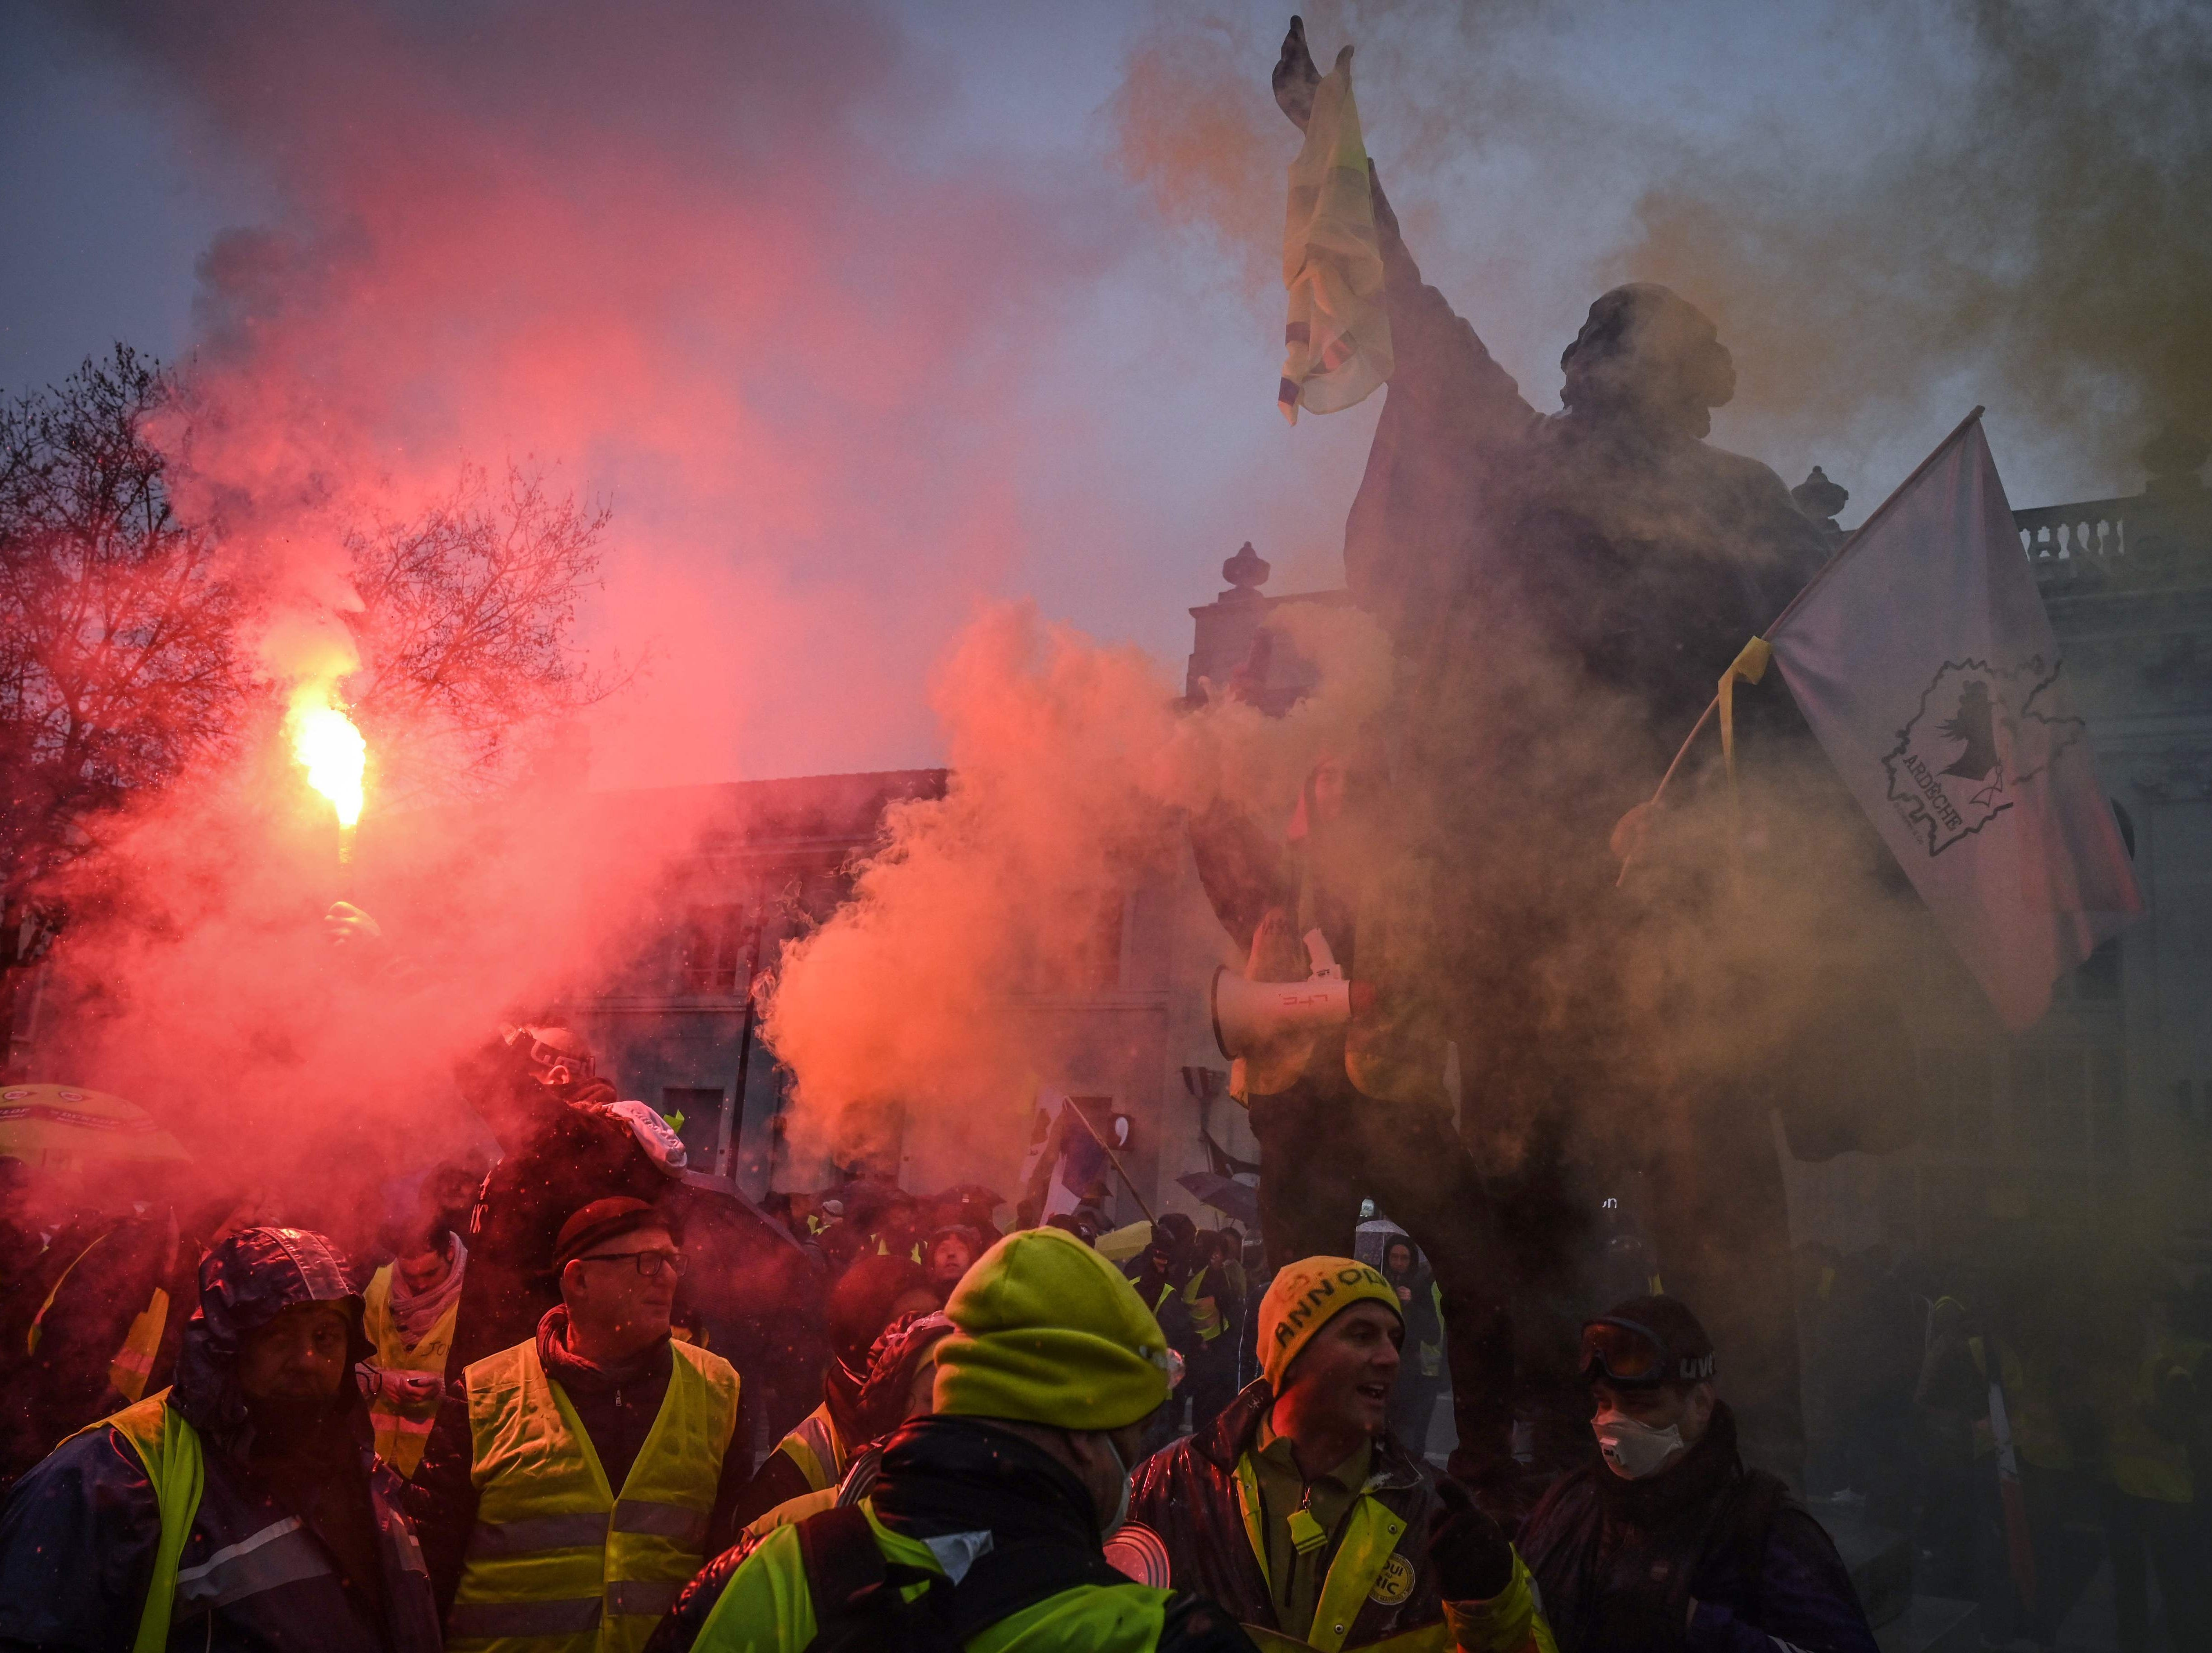 Protestors hold a red flare as they take in an anti-government demonstration called by the 'Yellow vests' movement in Valence, southeastern France, on Feb. 2, 2019.